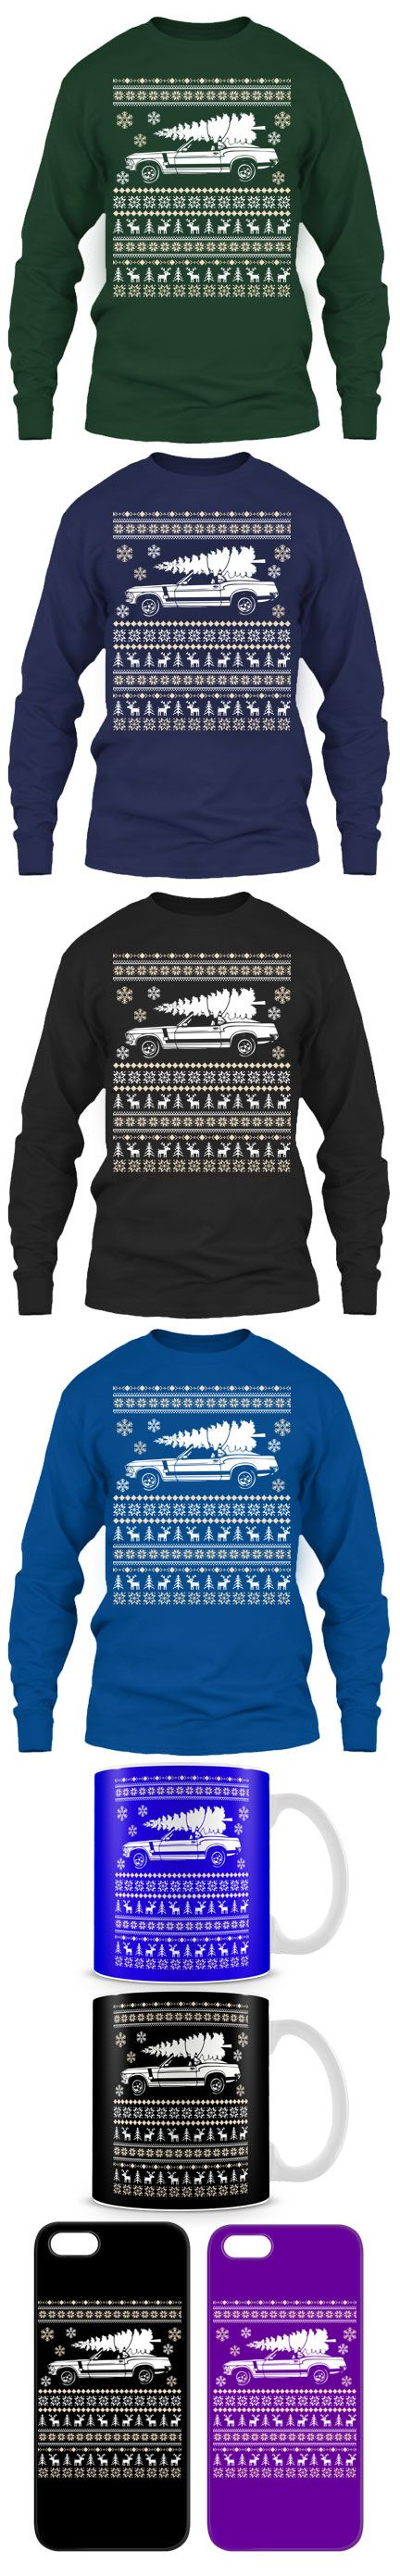 Ford Mustang Ugly Christmas Sweater! Click The Image To Buy It Now or Tag Someone You Want To Buy This For.